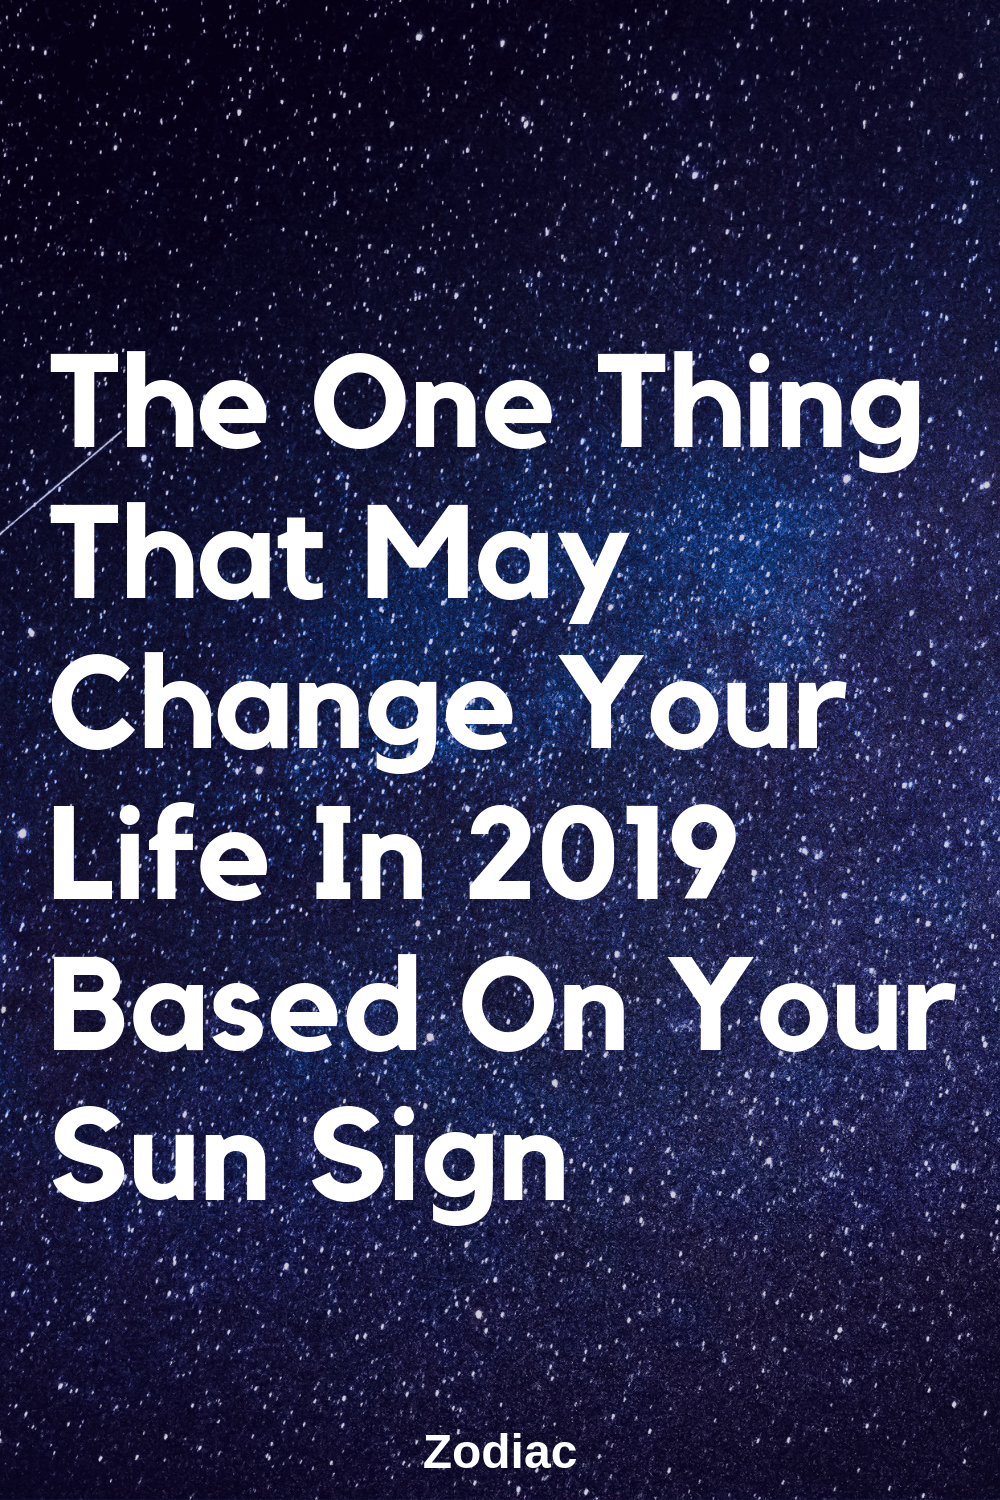 The One Thing That May Change Your Life In 2019 Based On Your Sun